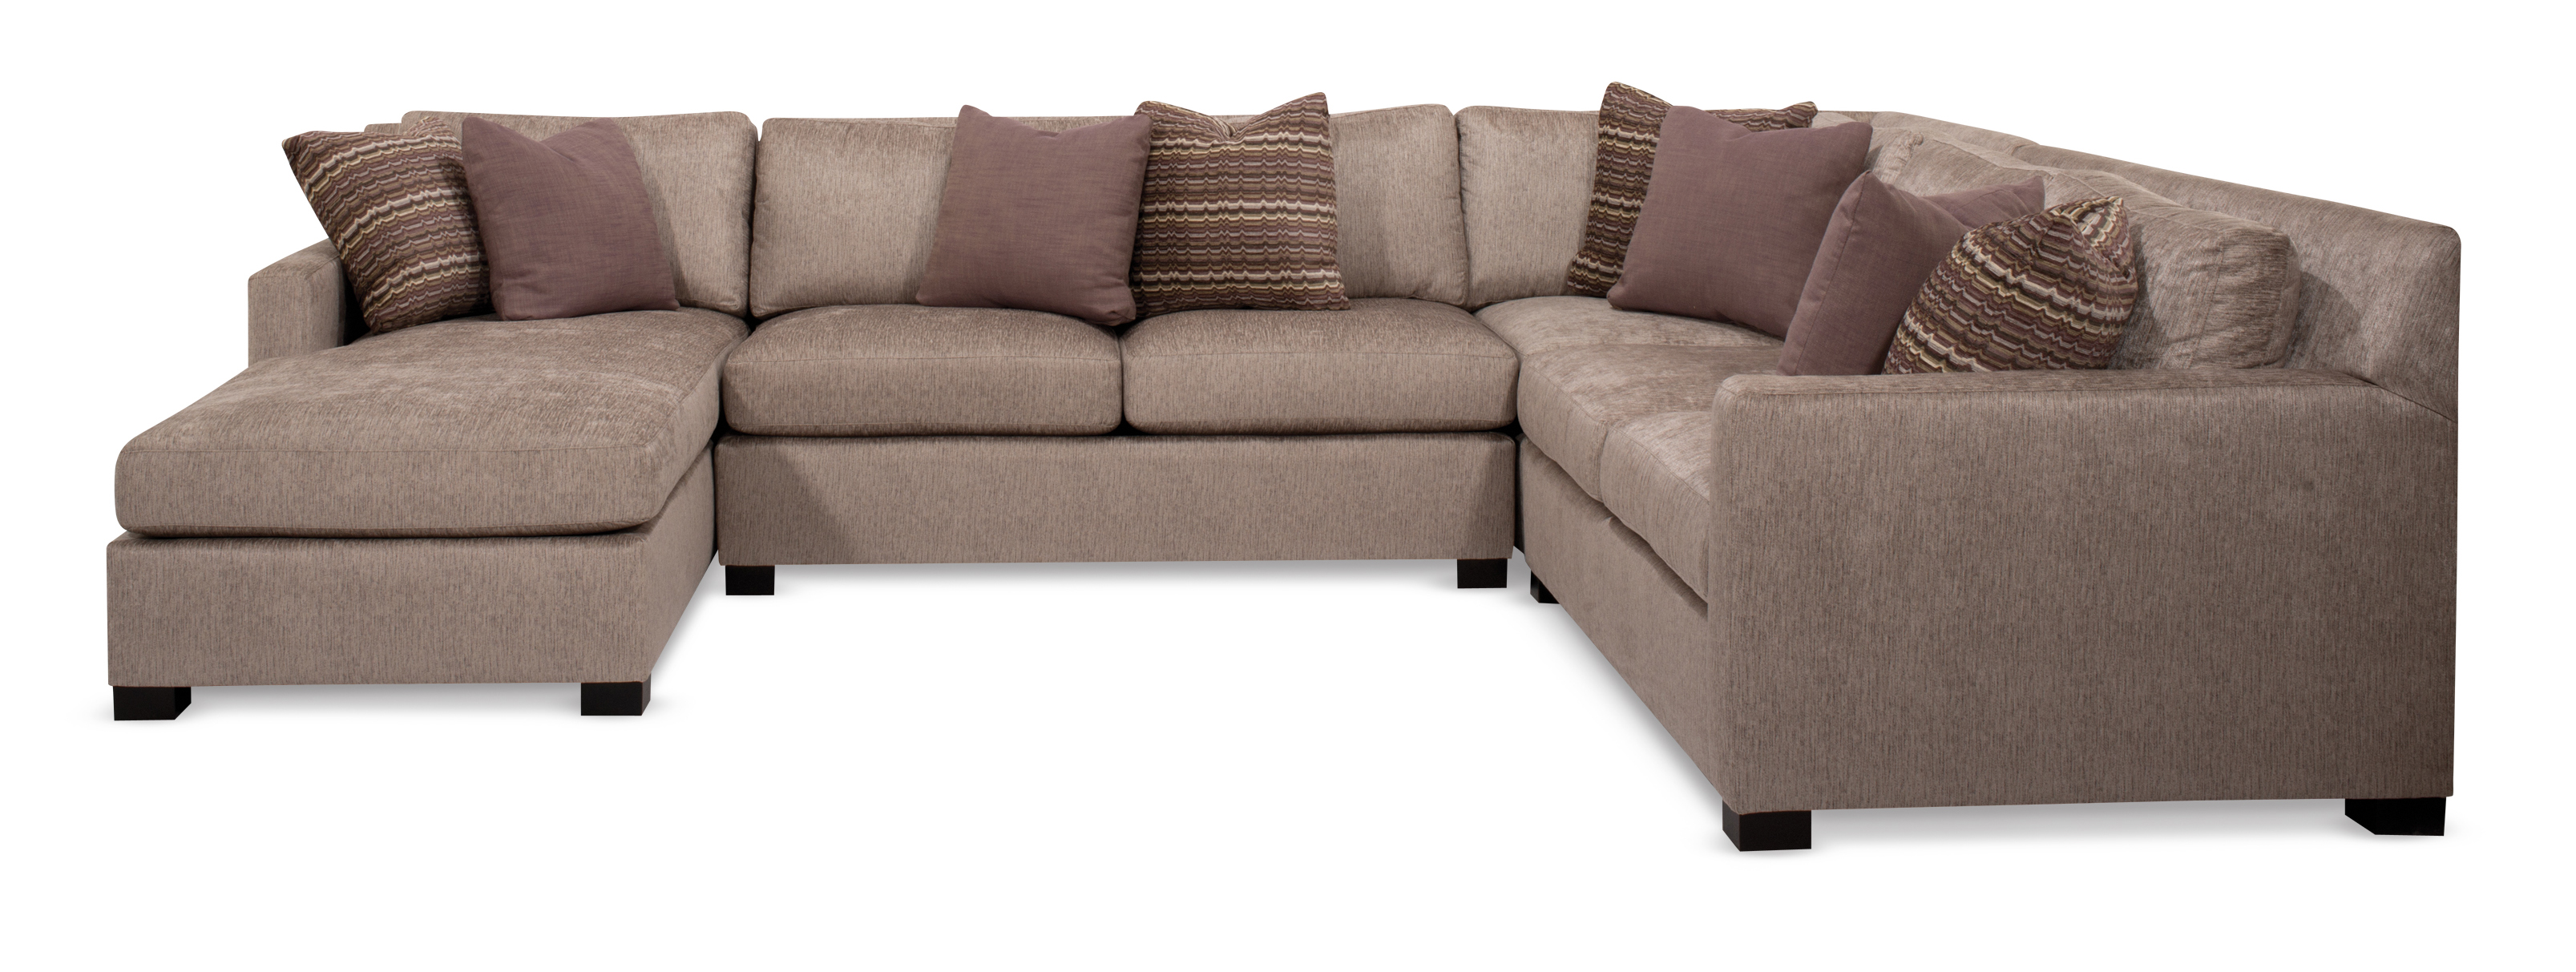 Kelsey Four Piece Sectional  sc 1 st  Robb u0026 Stucky : kelsey sectional - Sectionals, Sofas & Couches